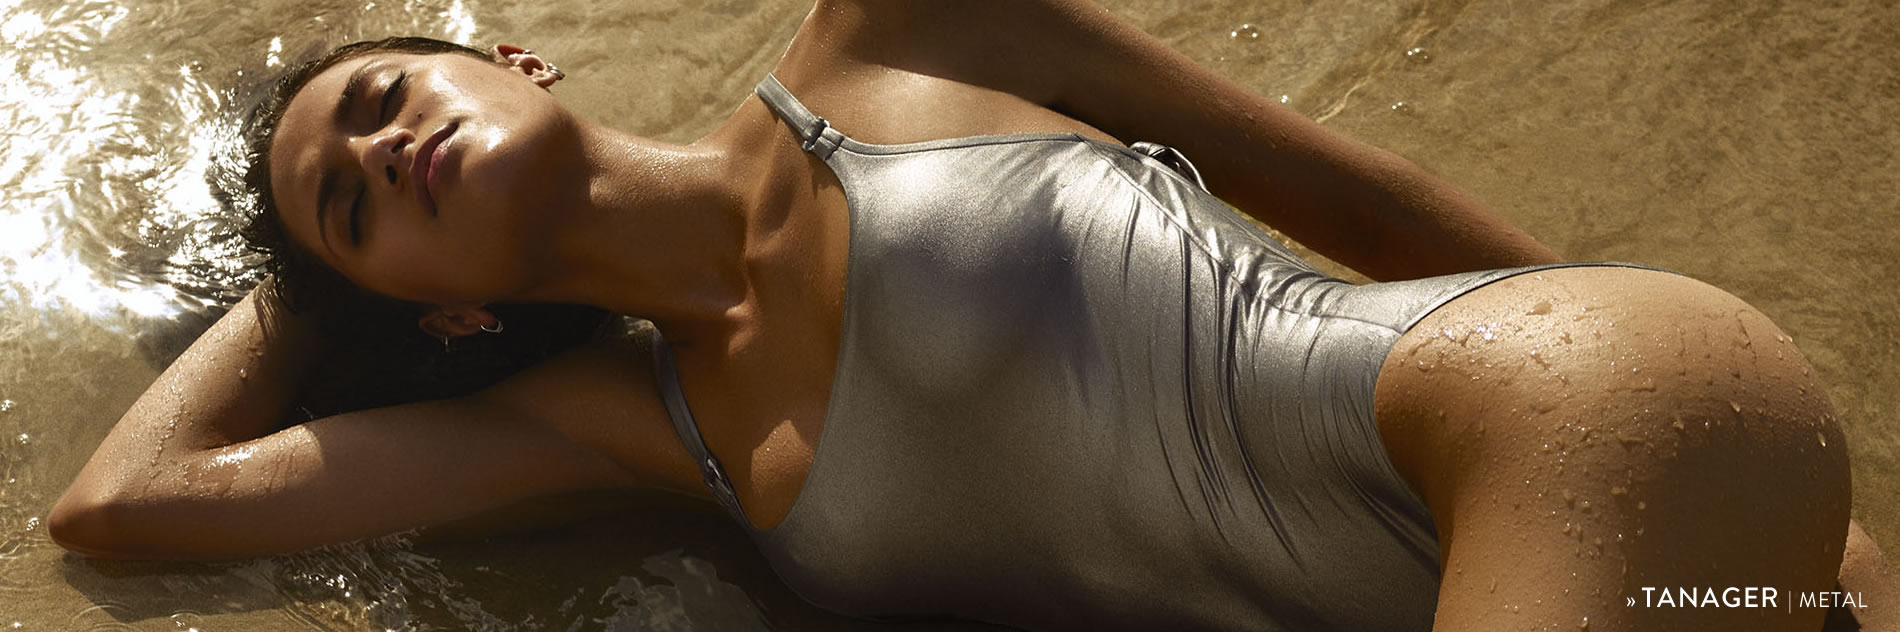 Andres Sarda Swimwear | Tanager metallic